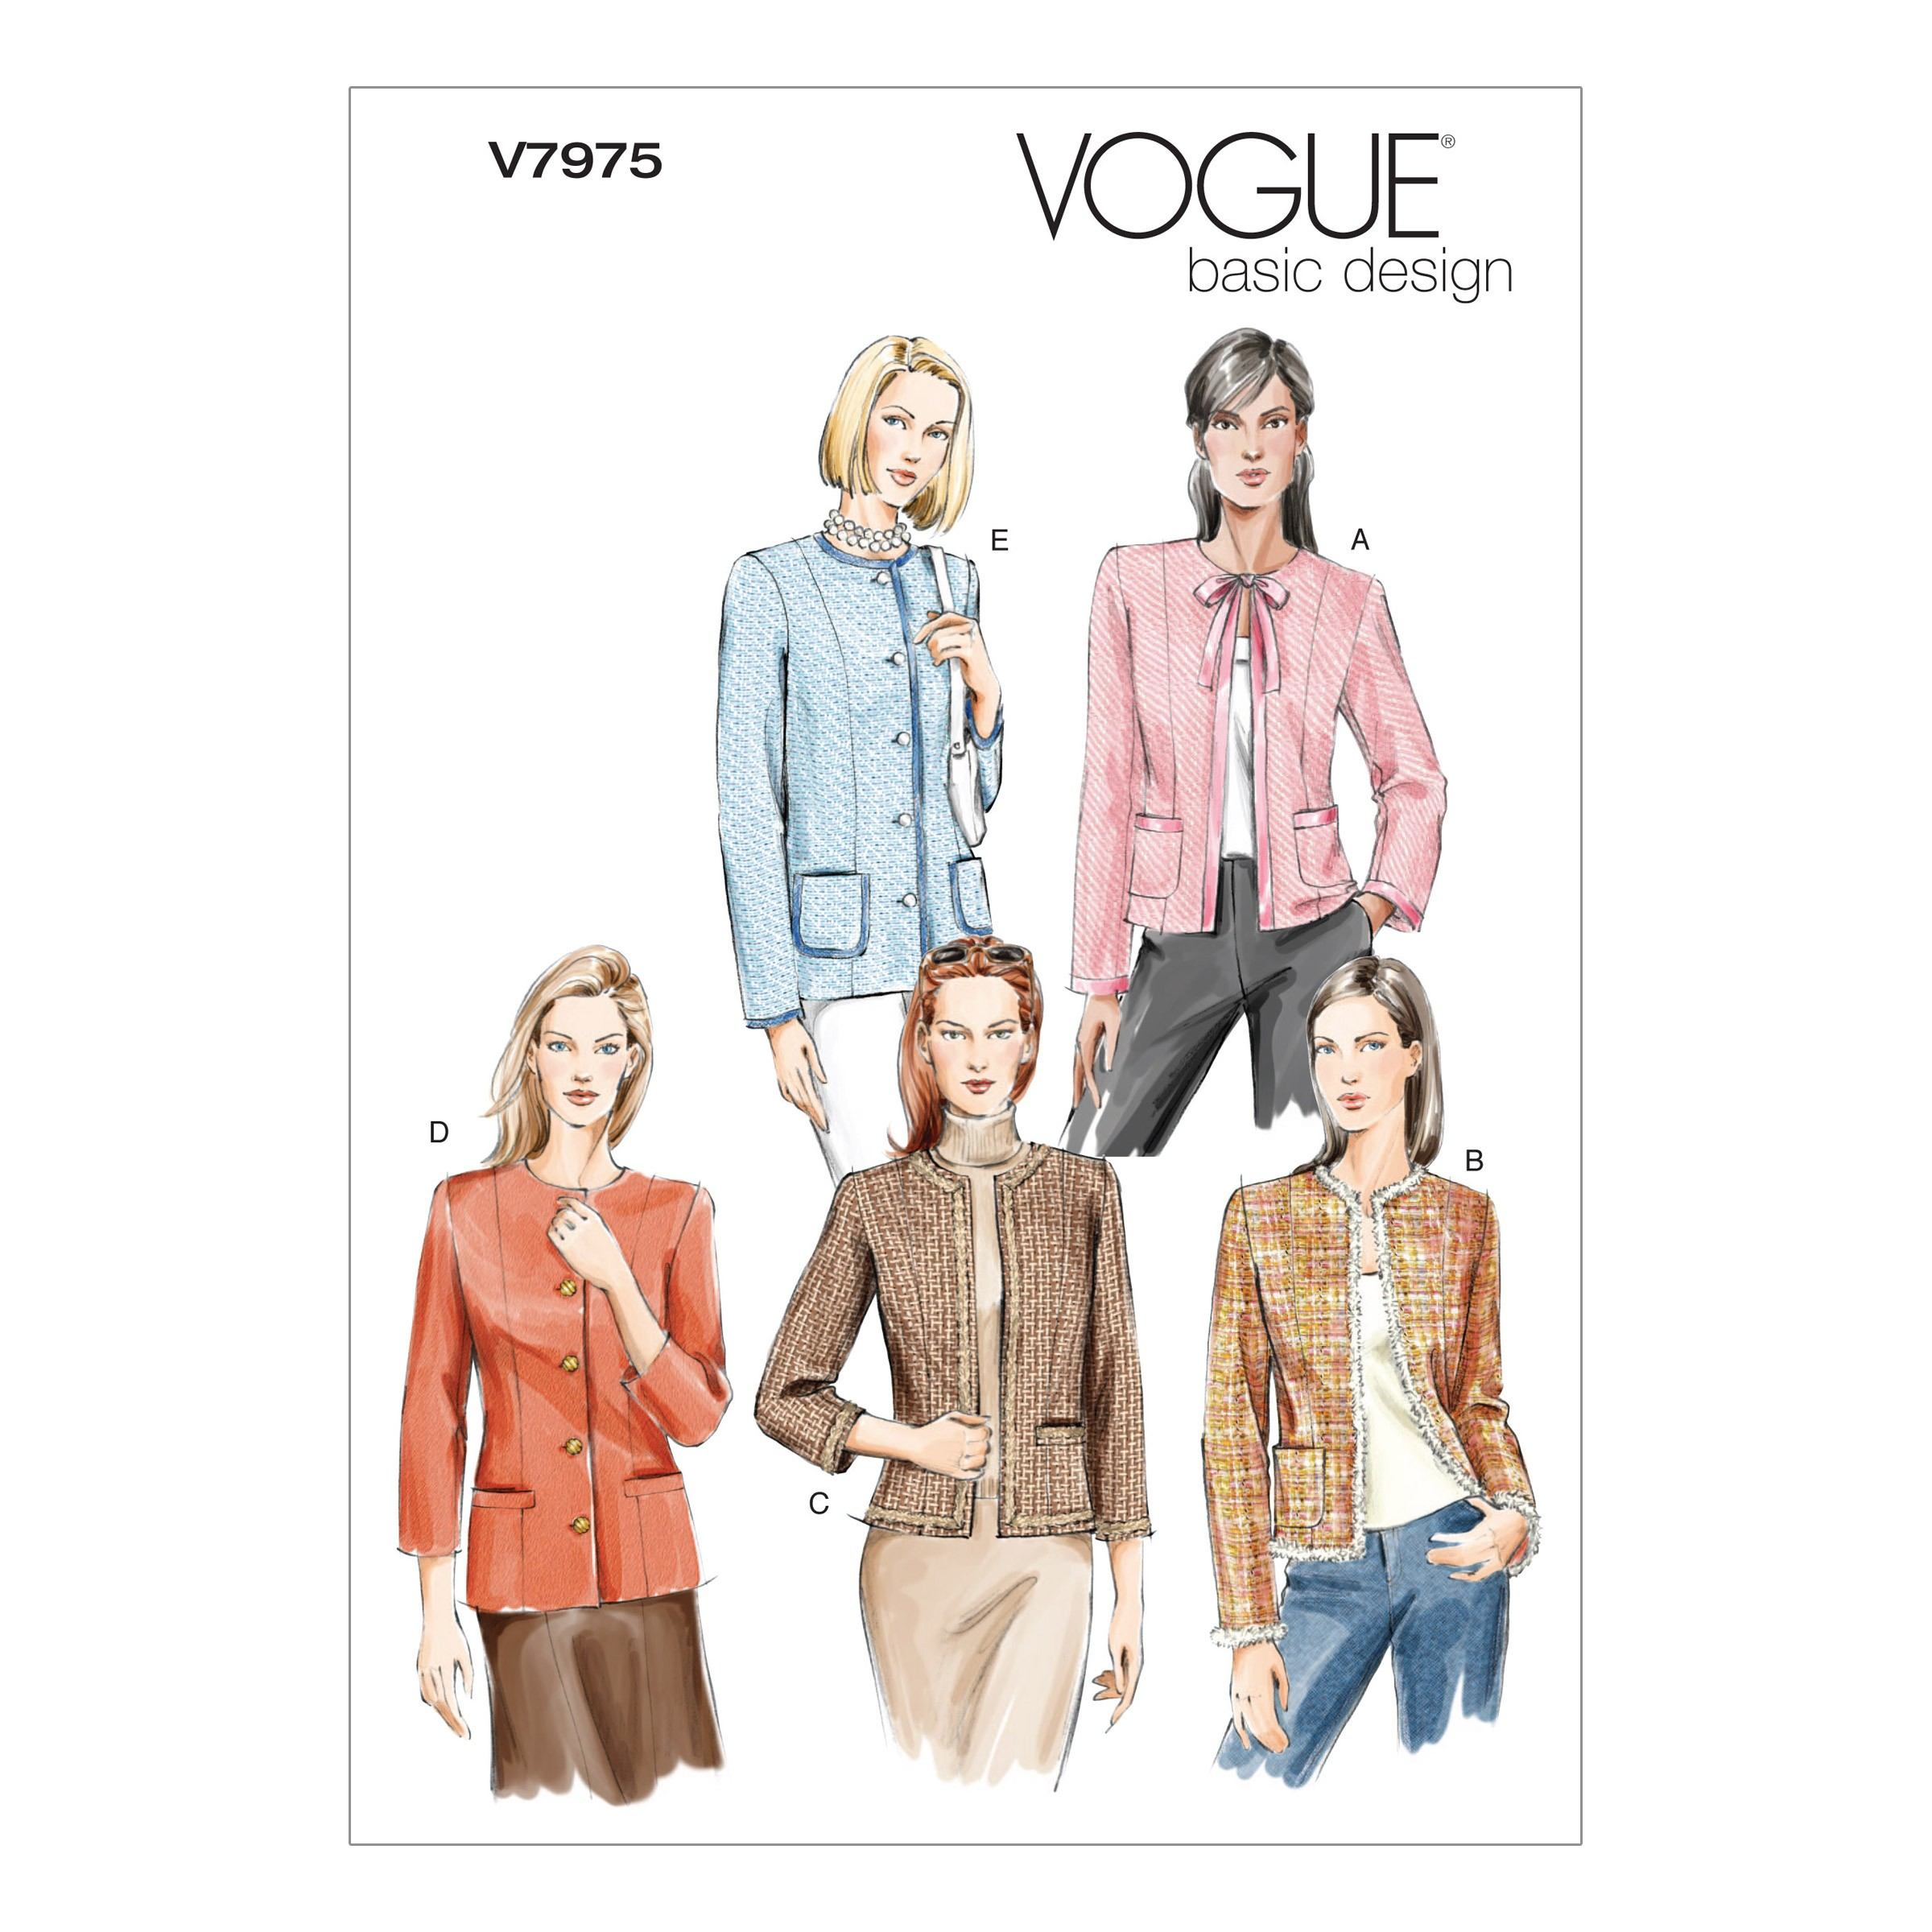 Vogue Sewing Pattern V7975 Women's Jackets Blazers with Variations